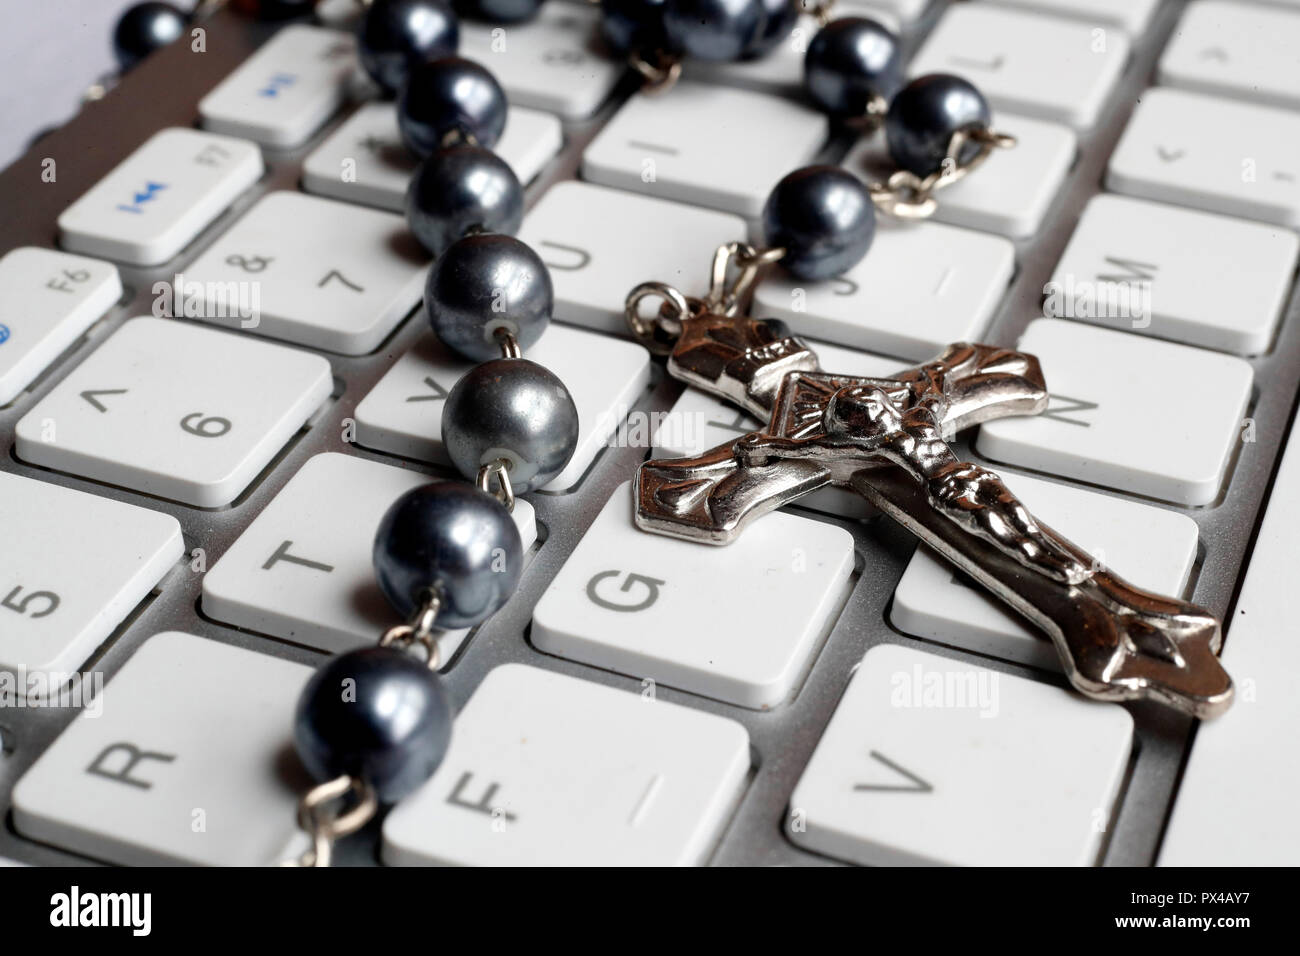 Christian Rosary on a white computer keyboard. - Stock Image